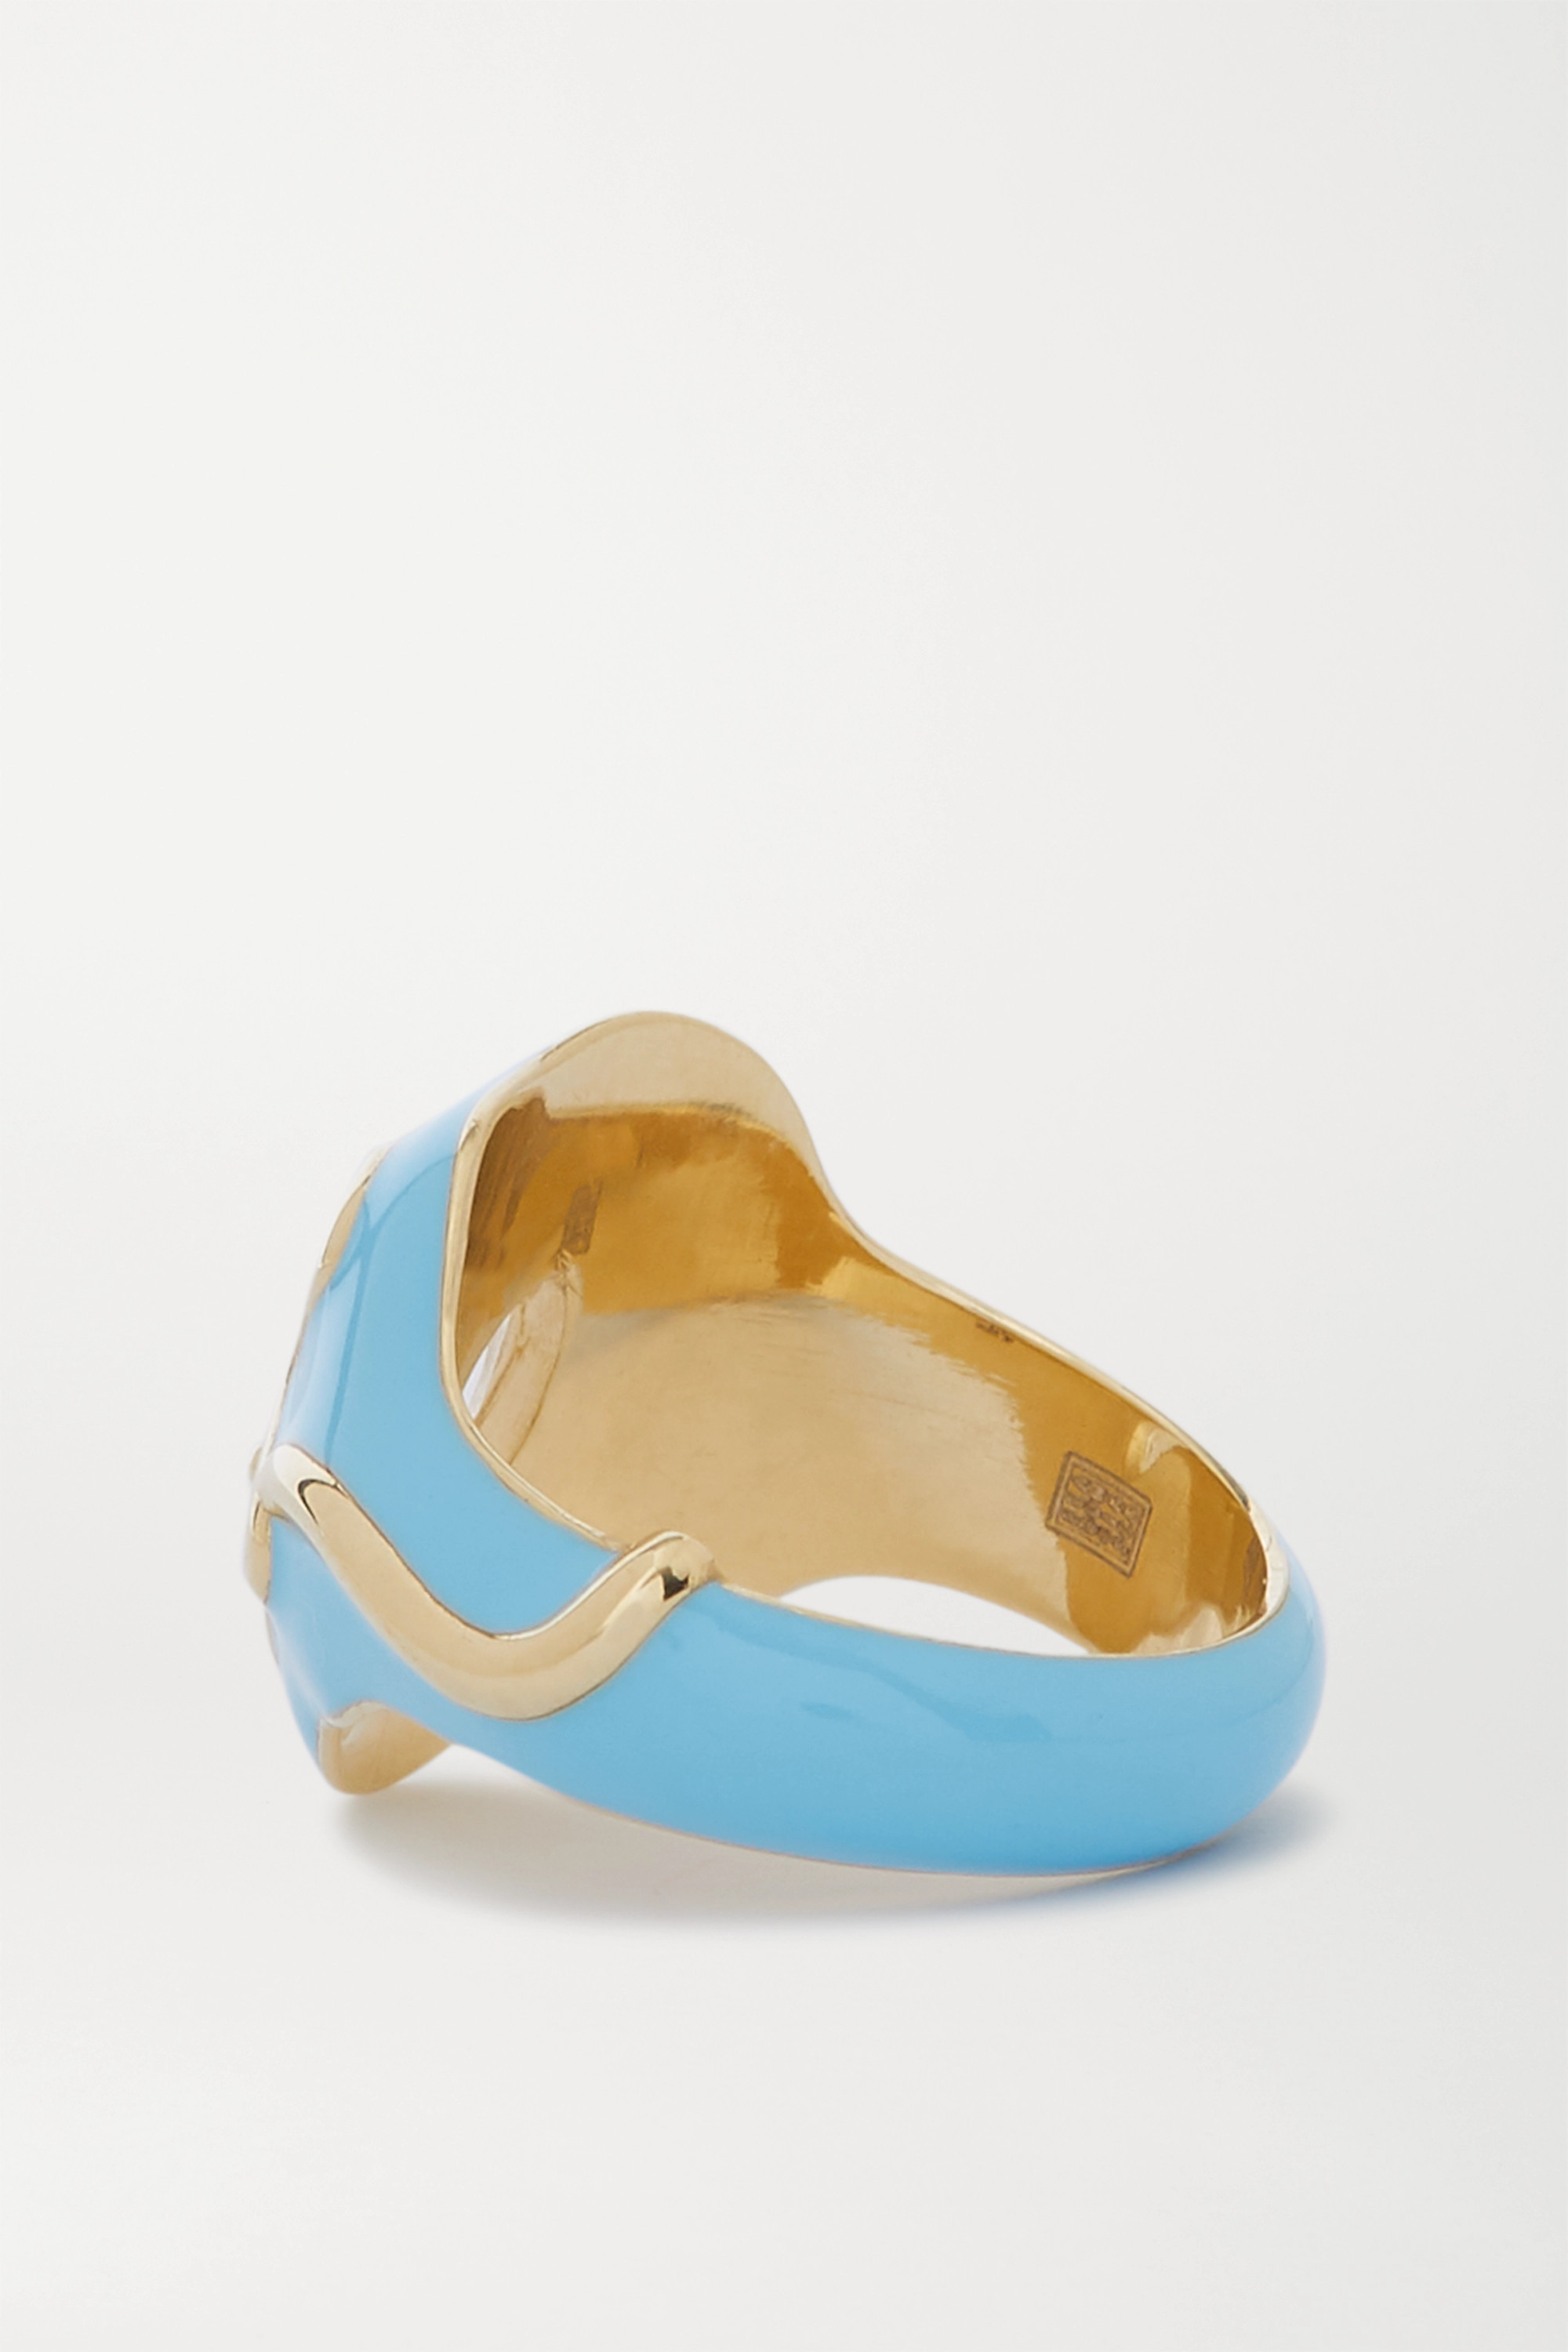 Bea Bongiasca 9-karat gold, enamel and rock crystal ring